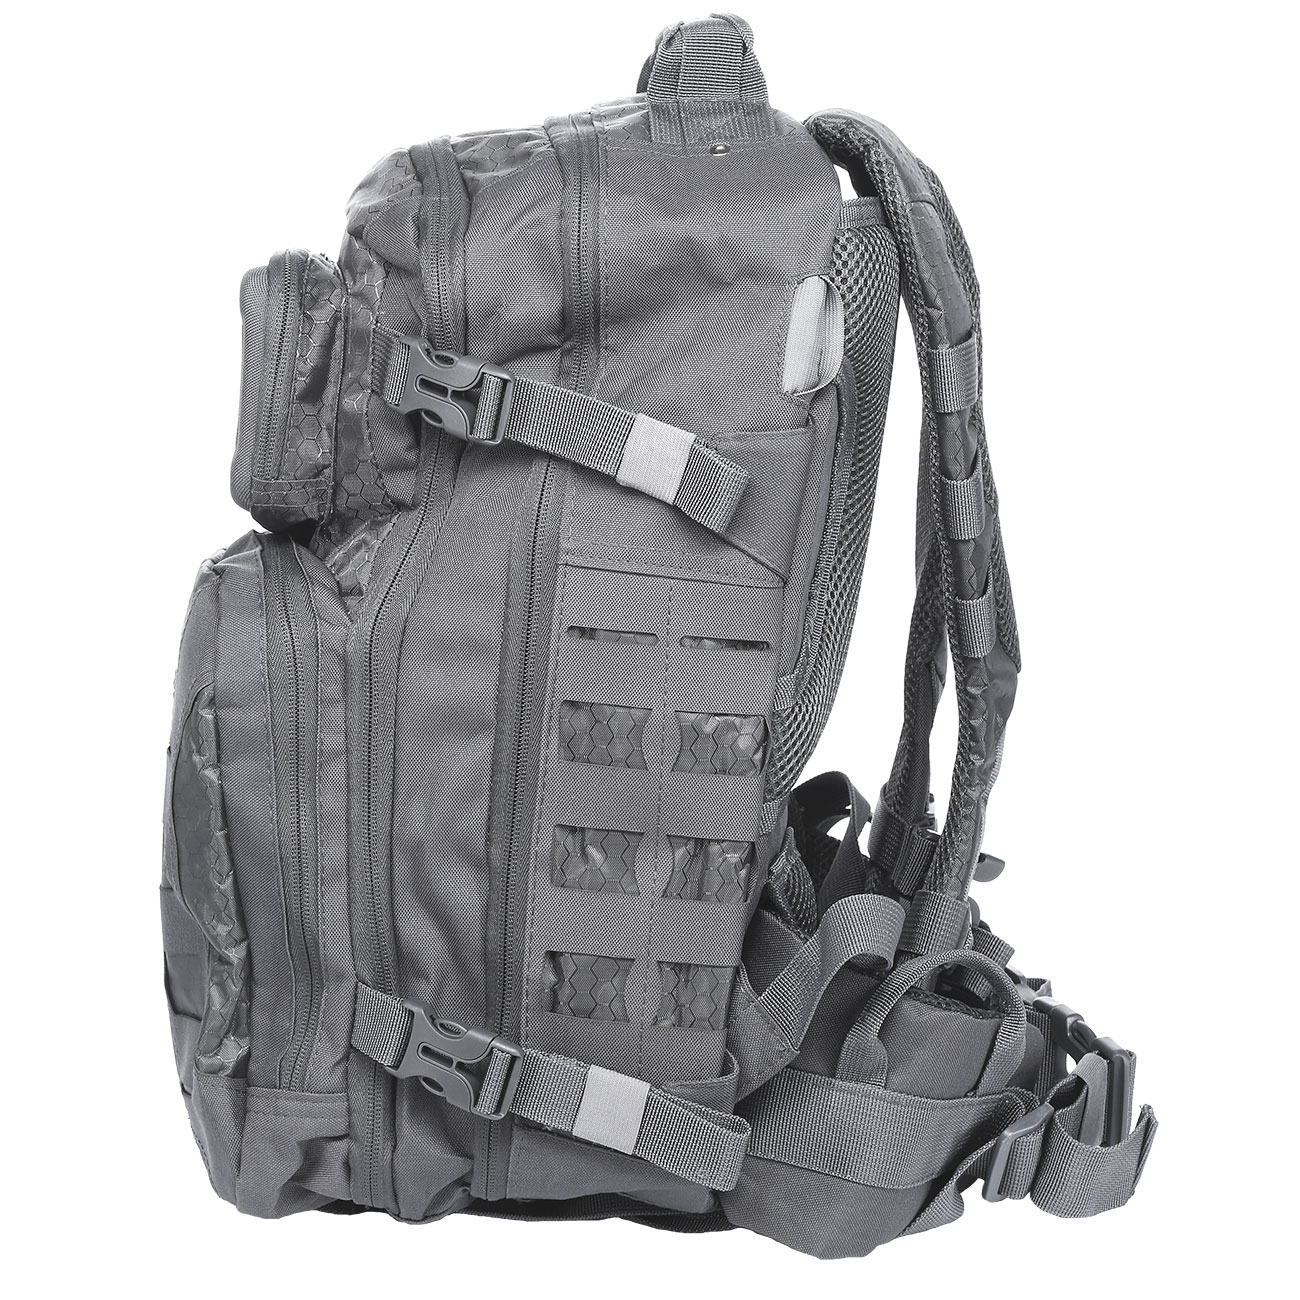 MFH Rucksack Operation I 30 Liter urban grau 4